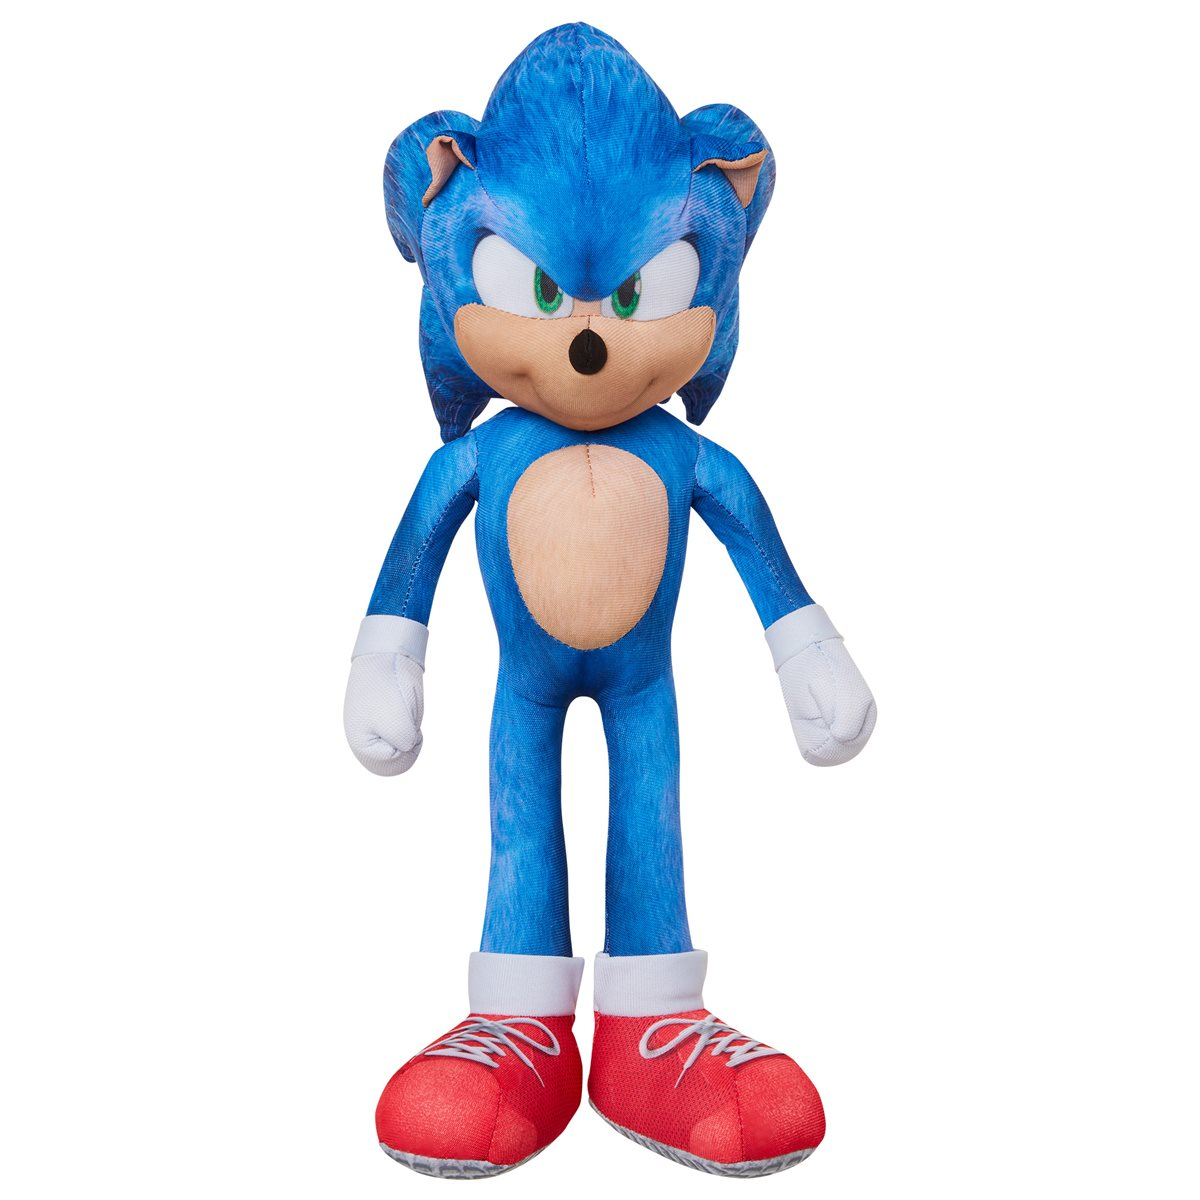 Sonic The Hedgehog Movie Sonic Talking 13 Inch Plush Entertainment Earth